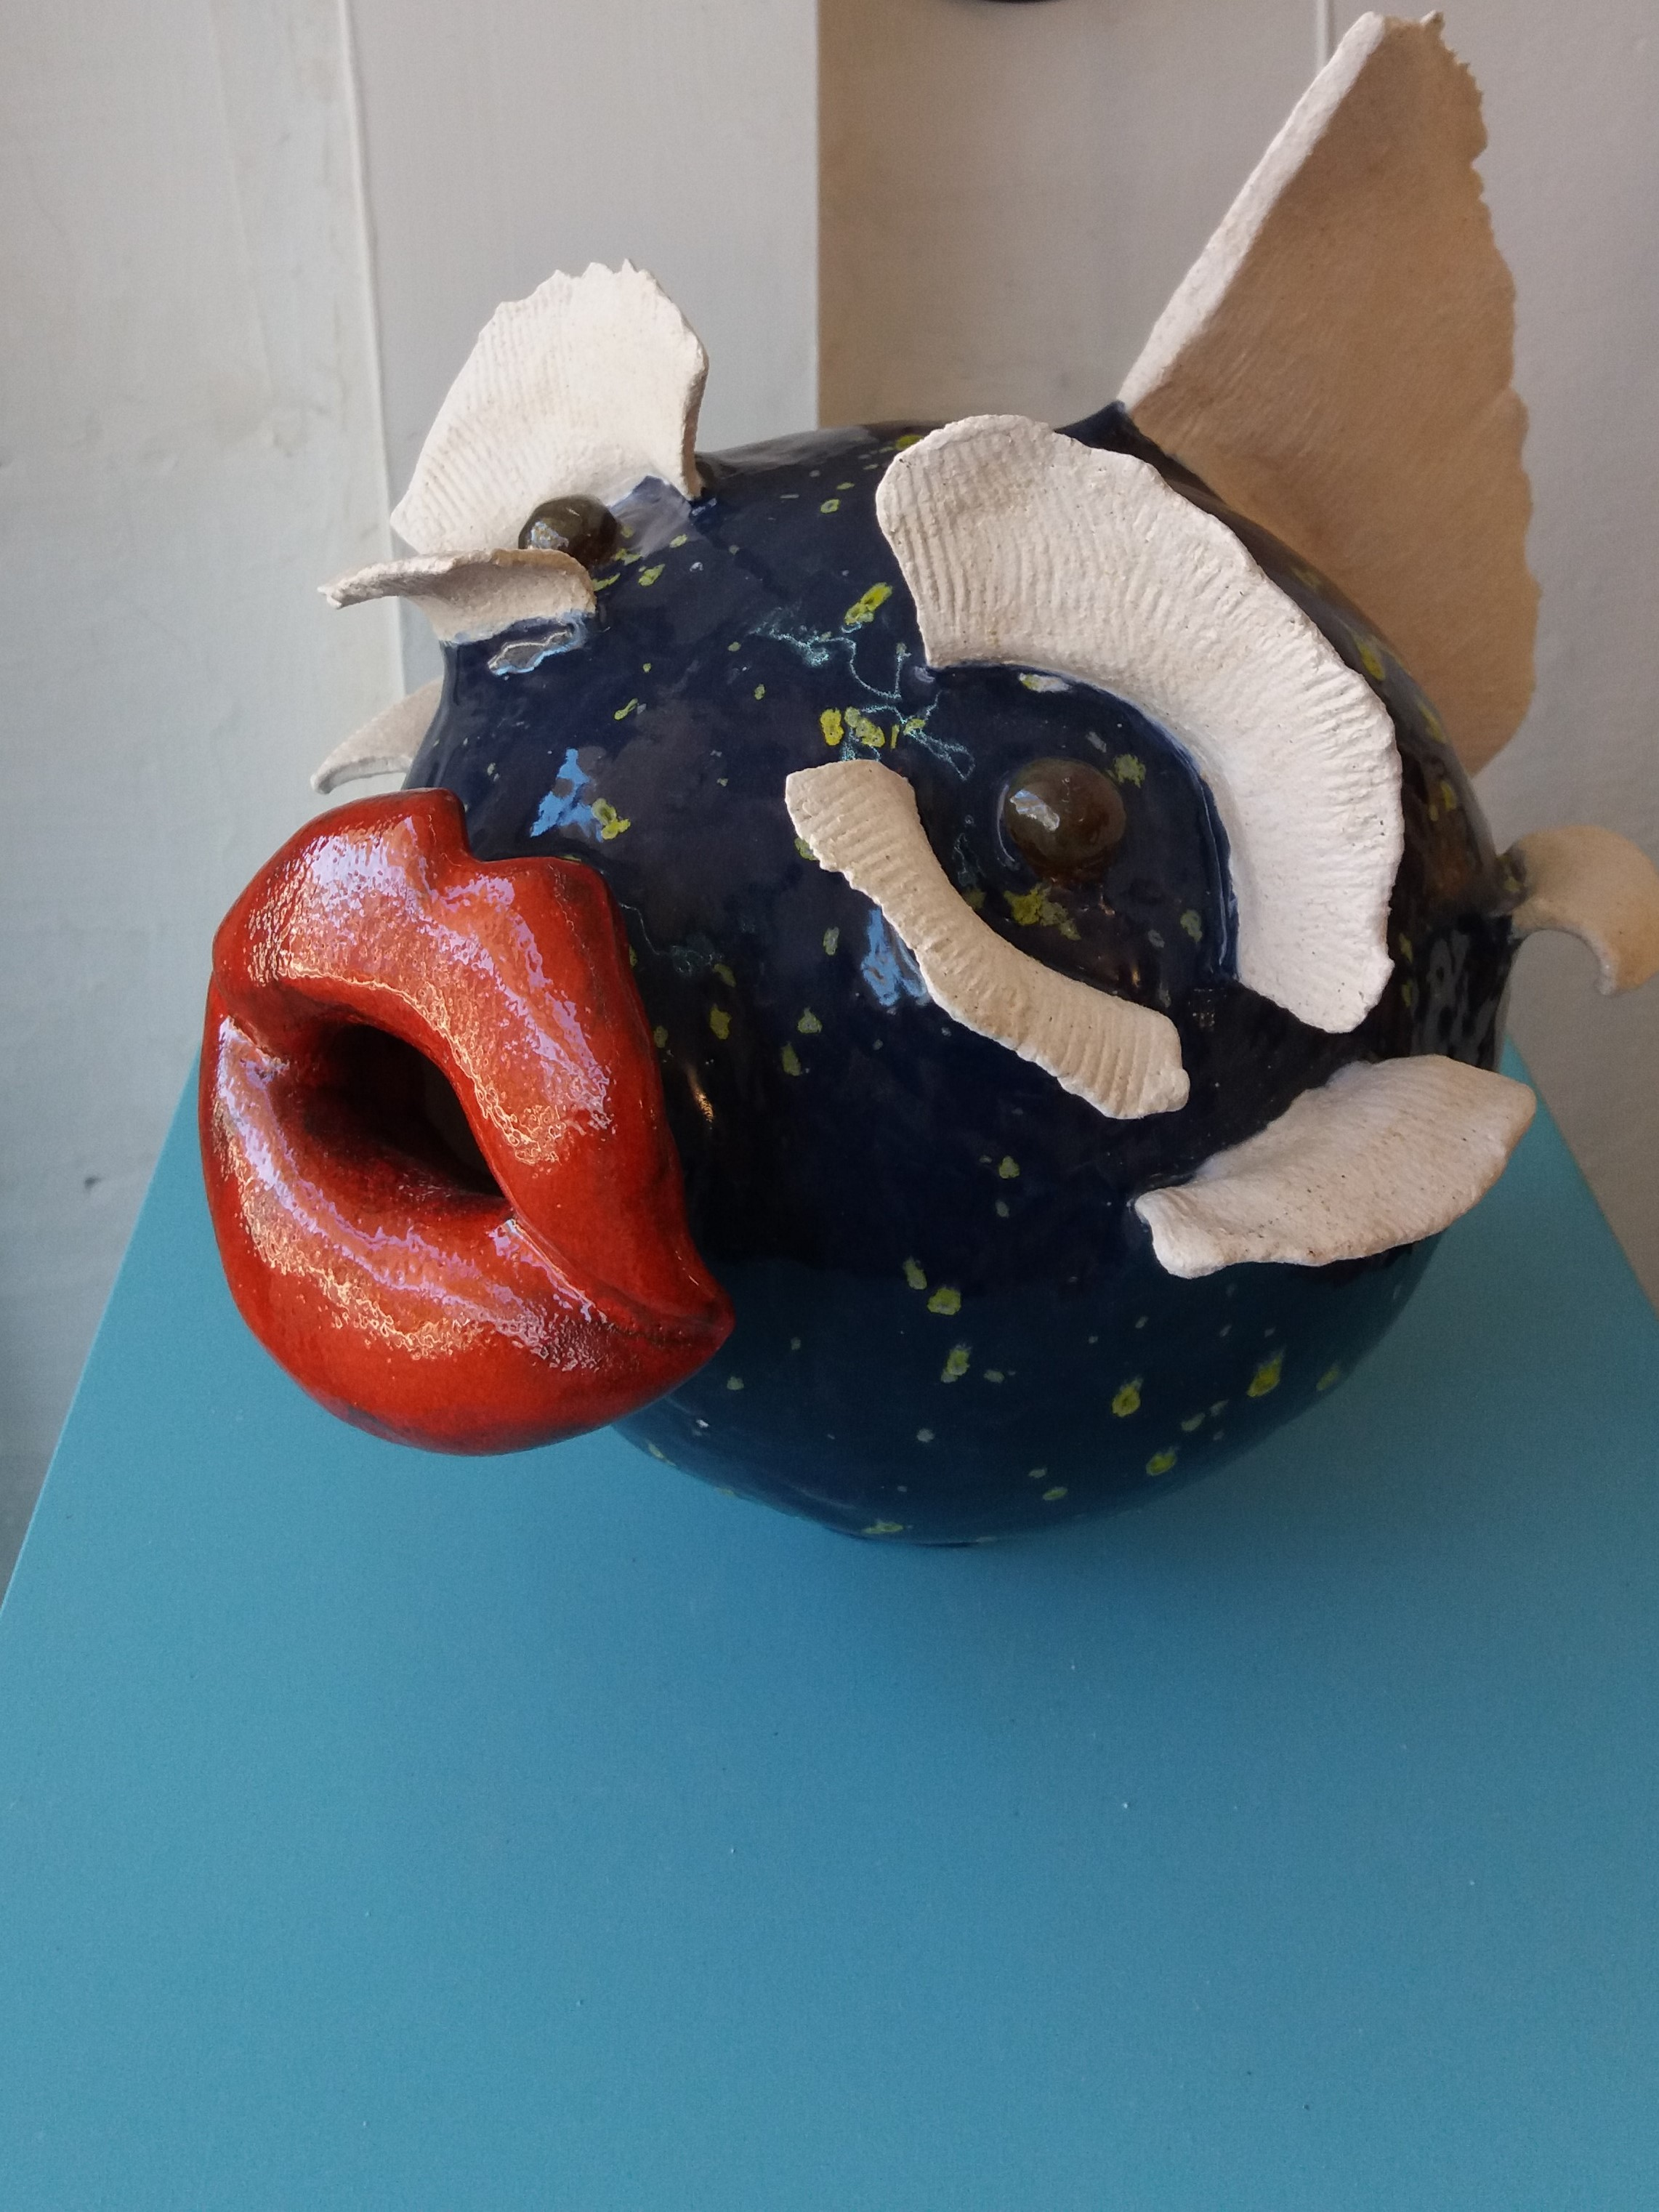 Poisson bisous: French Kiss